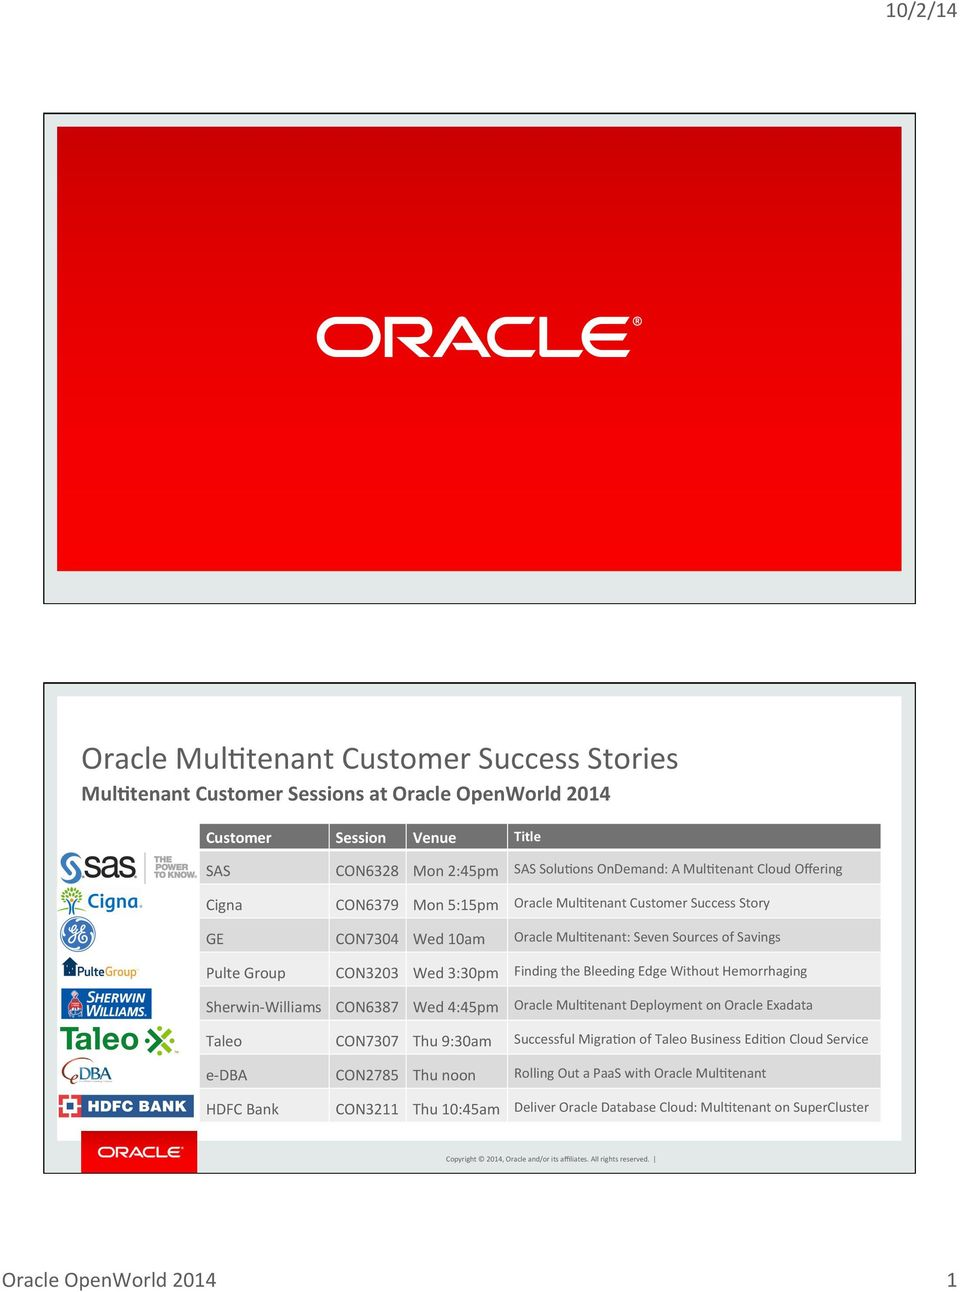 Bleeding Edge Without Hemorrhaging Sherwin- Williams CON6387 Wed 4:45pm Oracle MulBtenant Deployment on Oracle Exadata Taleo CON7307 Thu 9:30am Successful MigraBon of Taleo